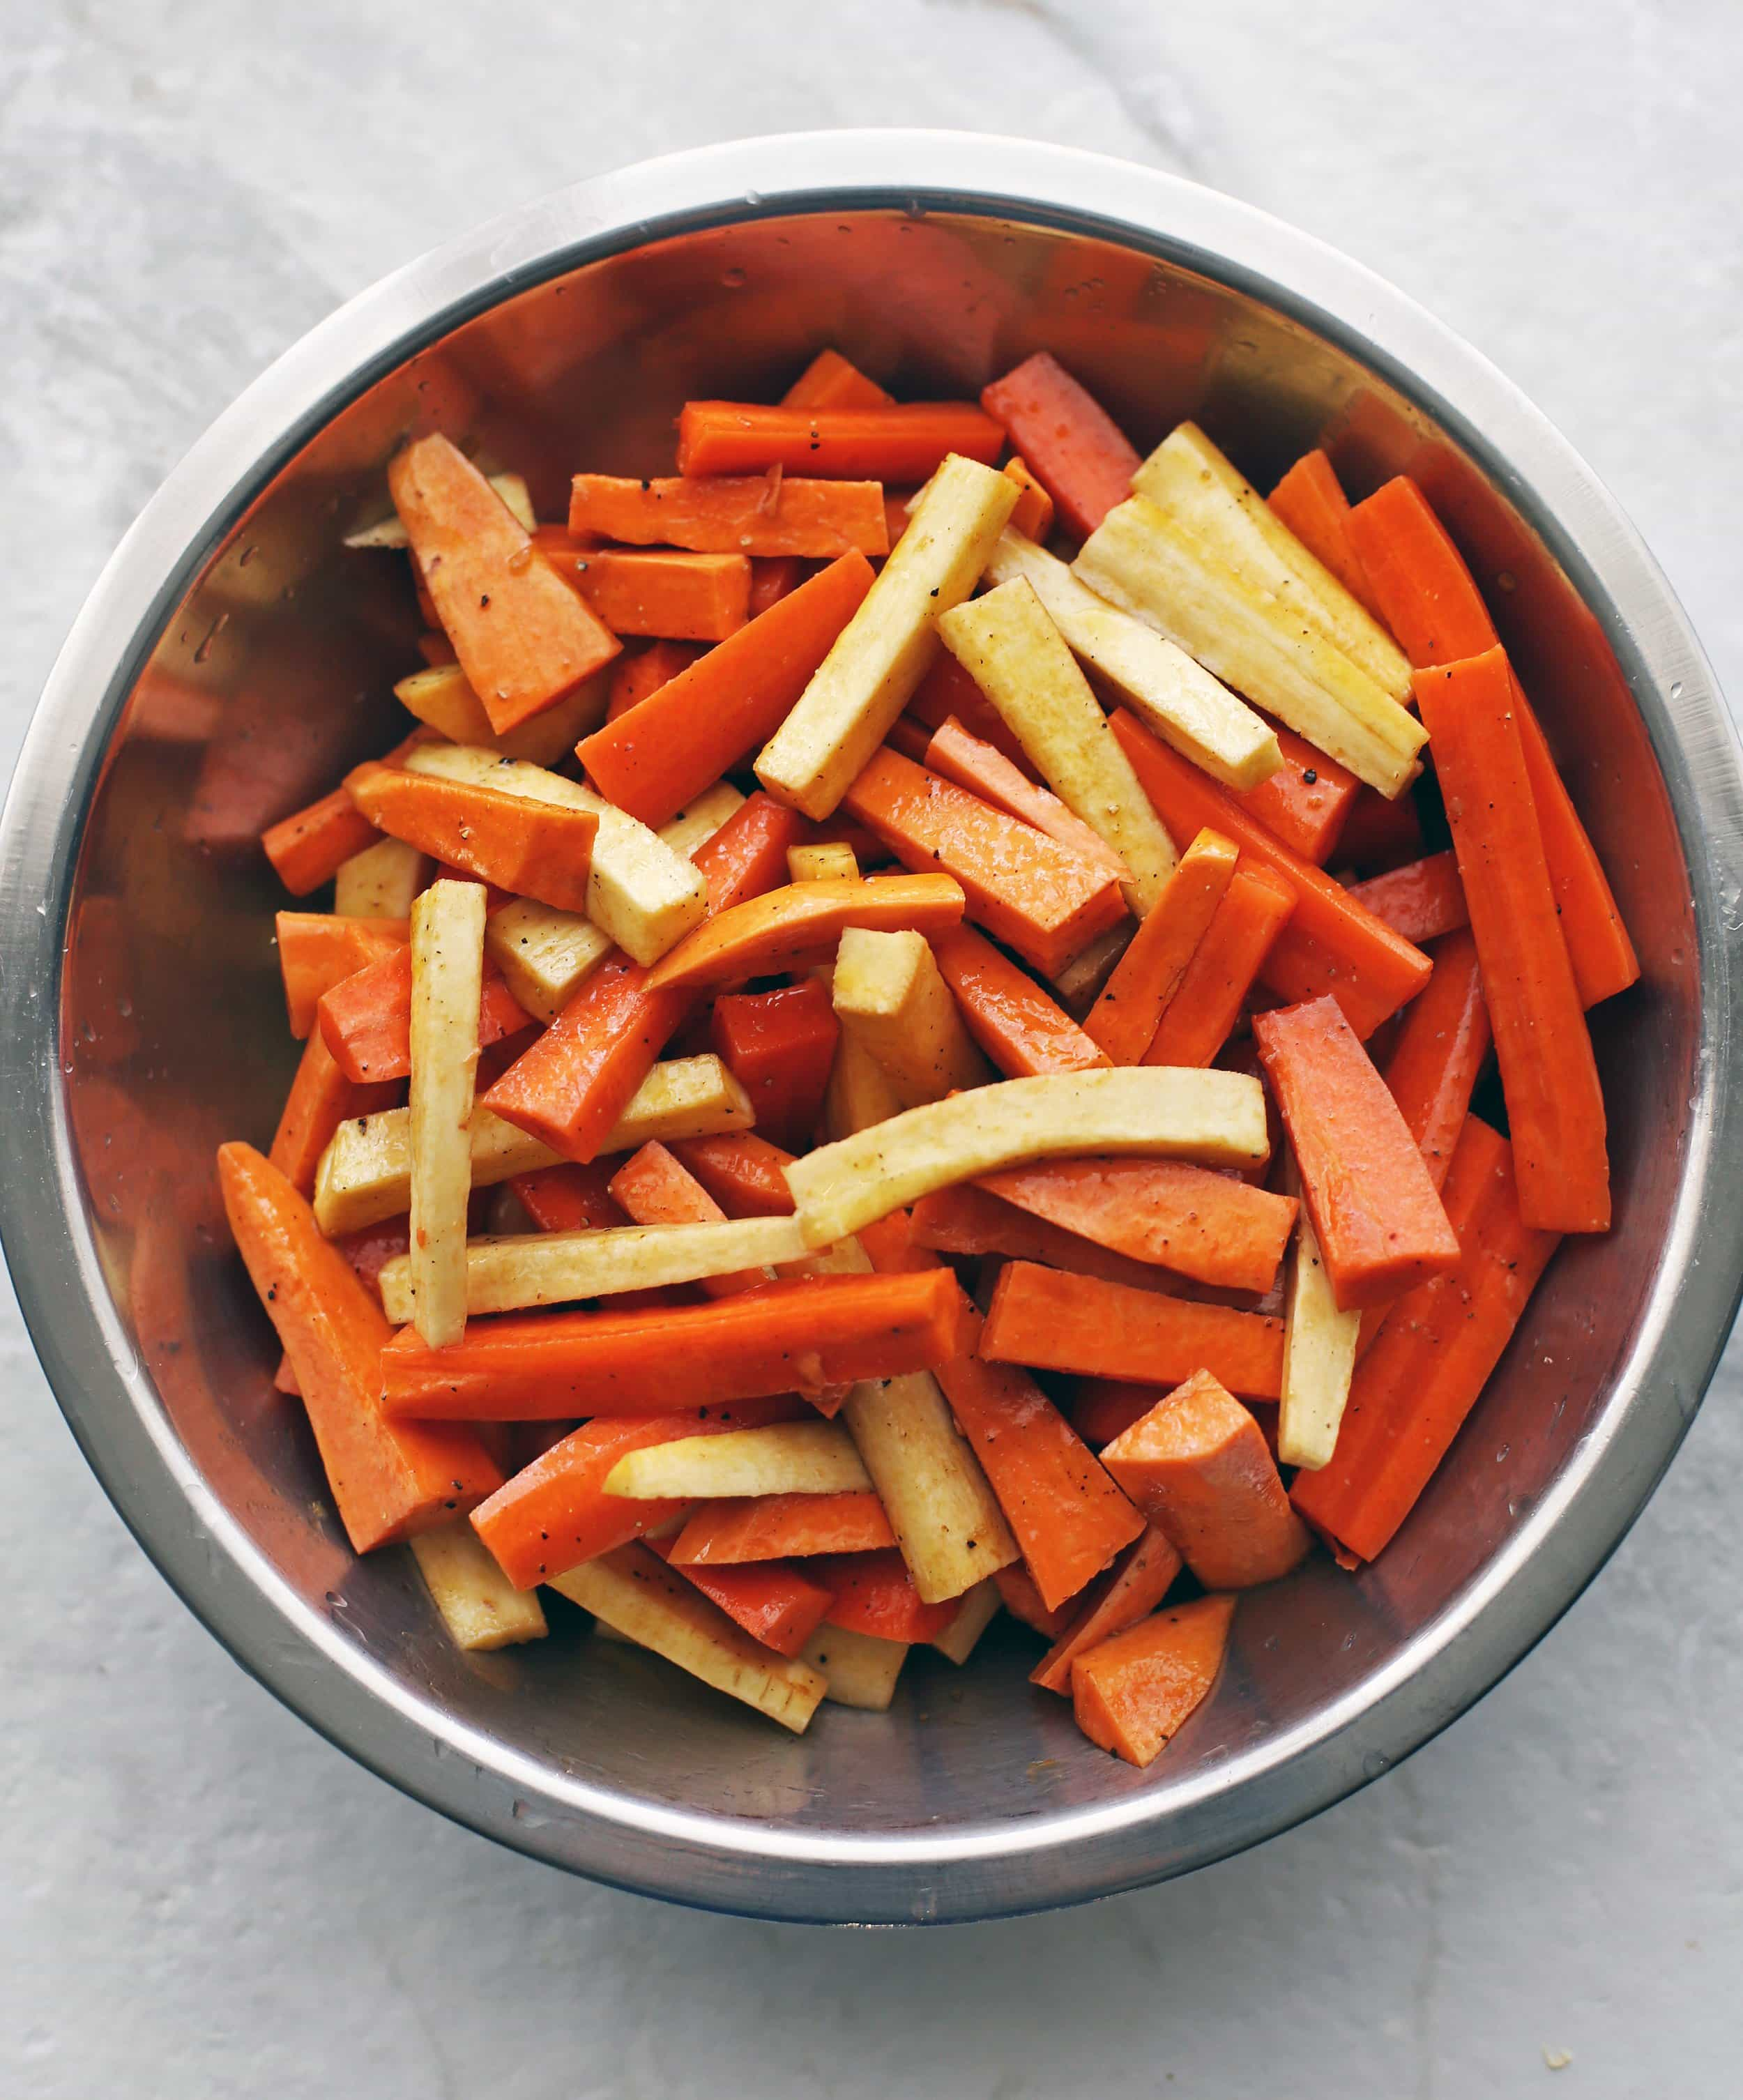 Sliced carrots, parsnips, and sweet potatoes mixed with olive oil and balsamic vinegar in a large metal bowl.